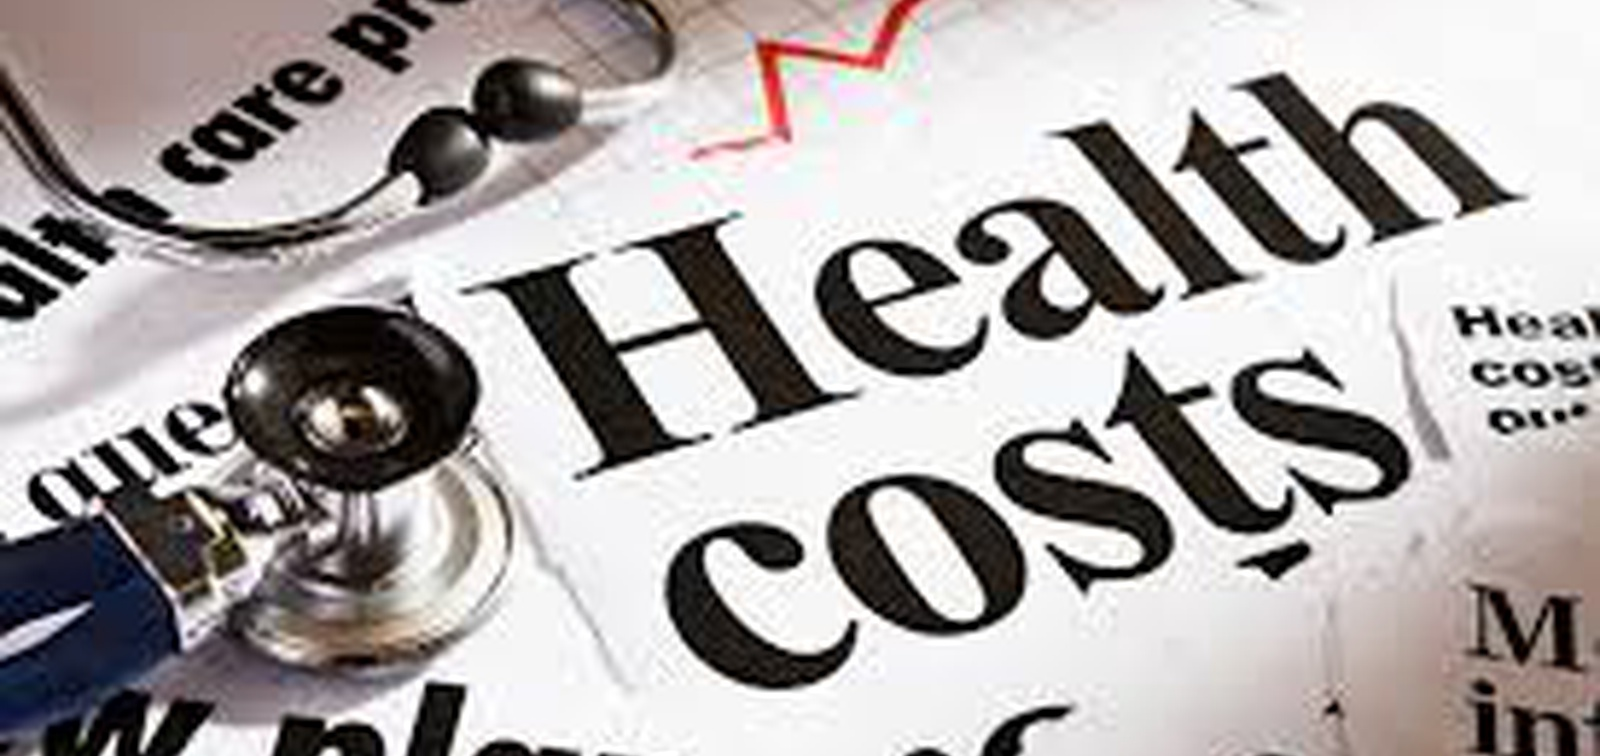 COVID-19 is making it harder for some middle income patients to pay premiums, deductibles: report